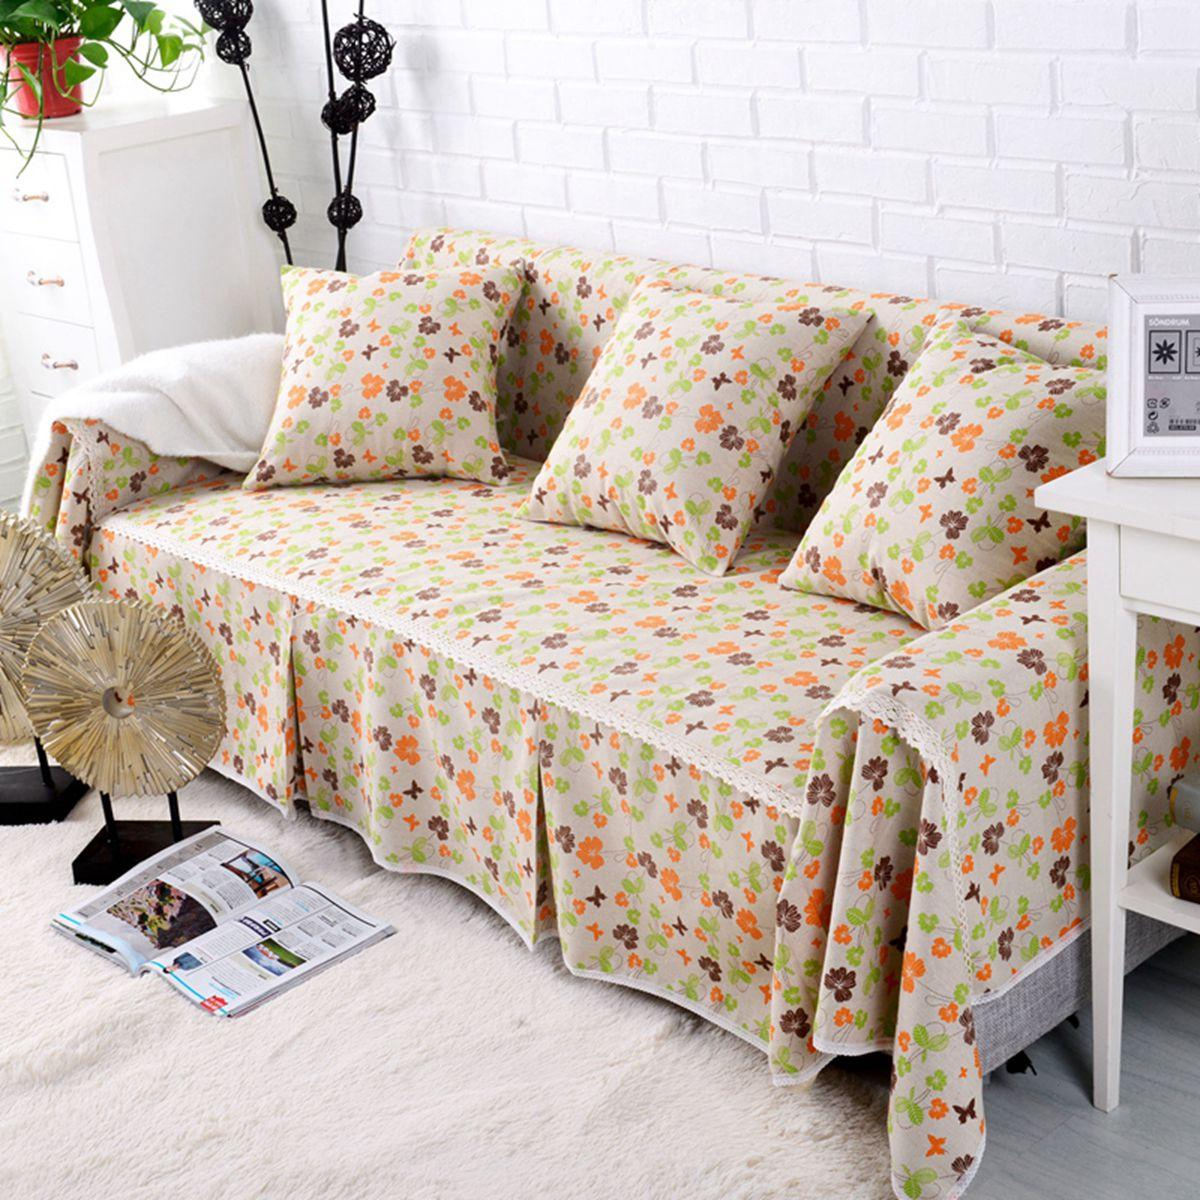 Sofa Cover Couch Slipcover Cotton Blend 1 4 Seater Sofa Protector Chair Covers Pet Dog